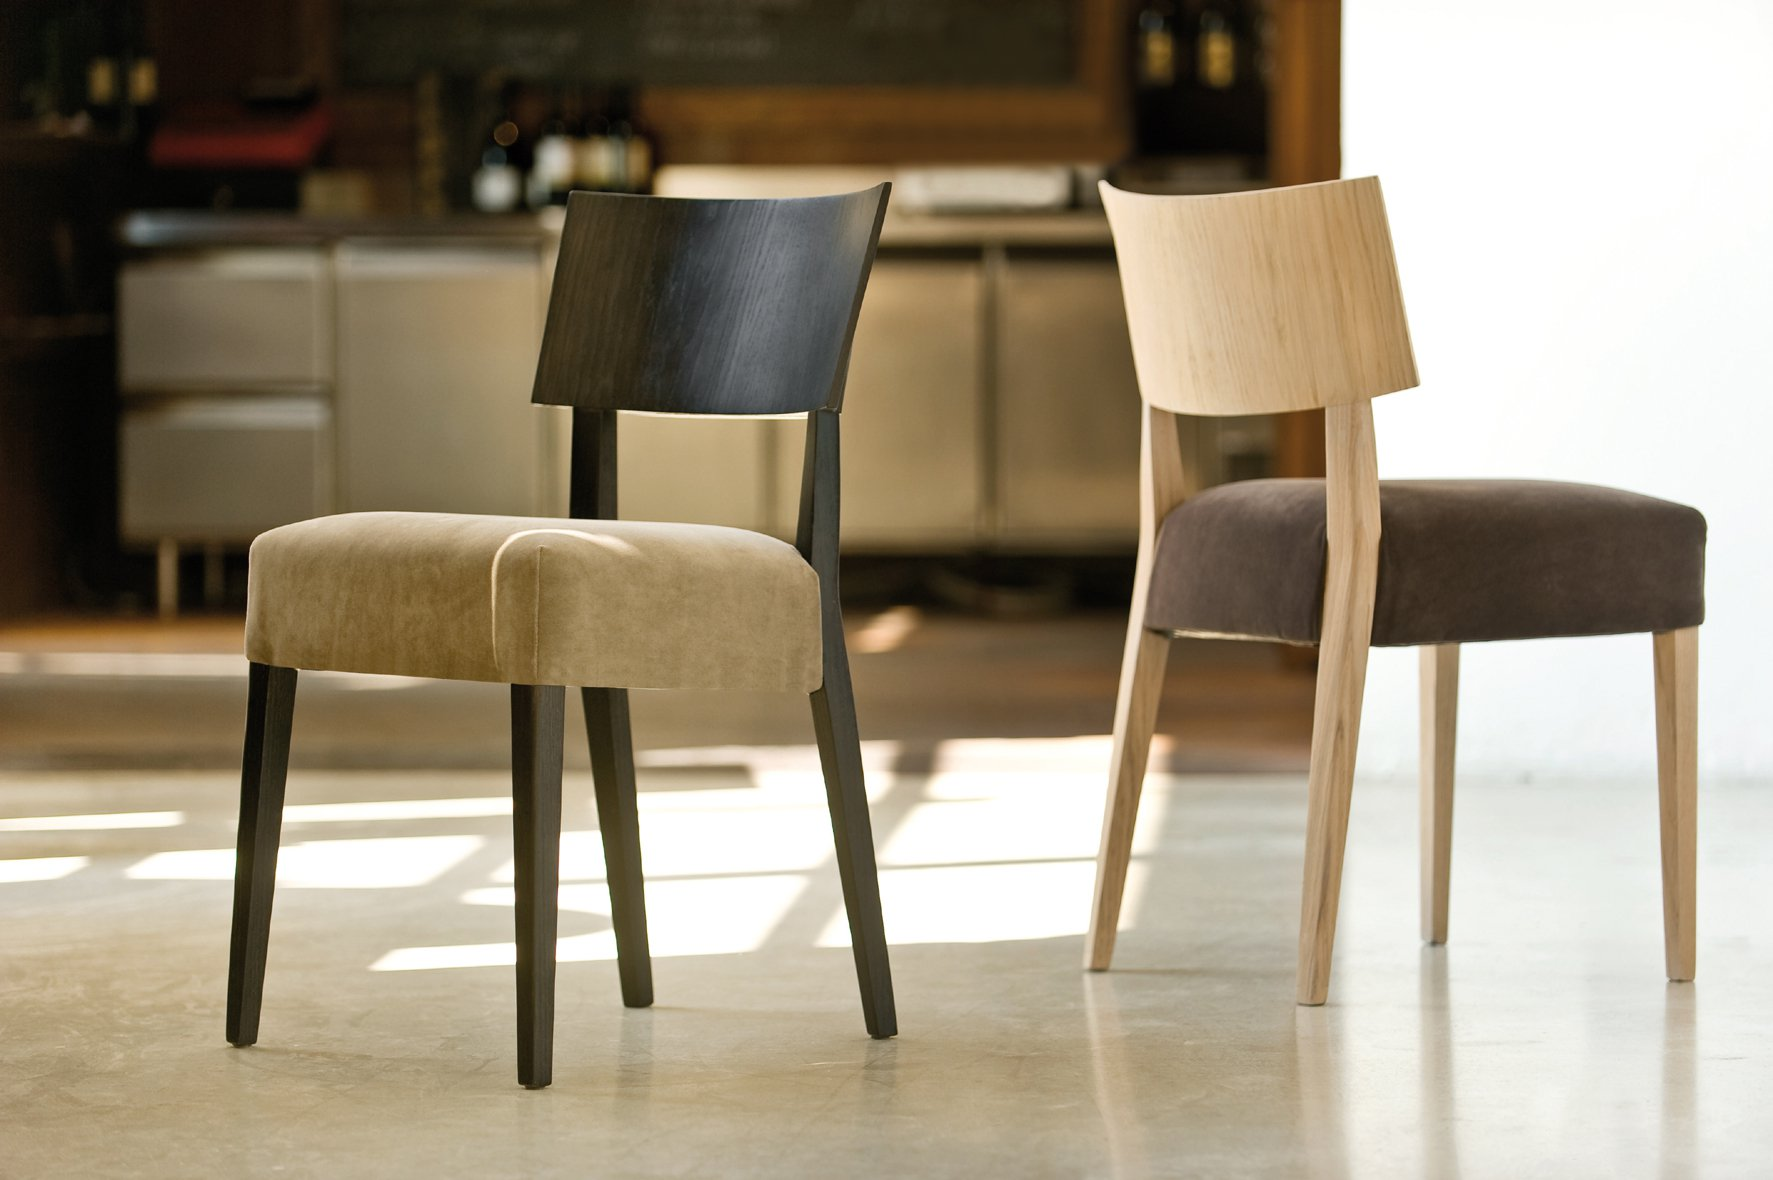 Elle 452 chair from Pedrali, designed by Pedrali R&D